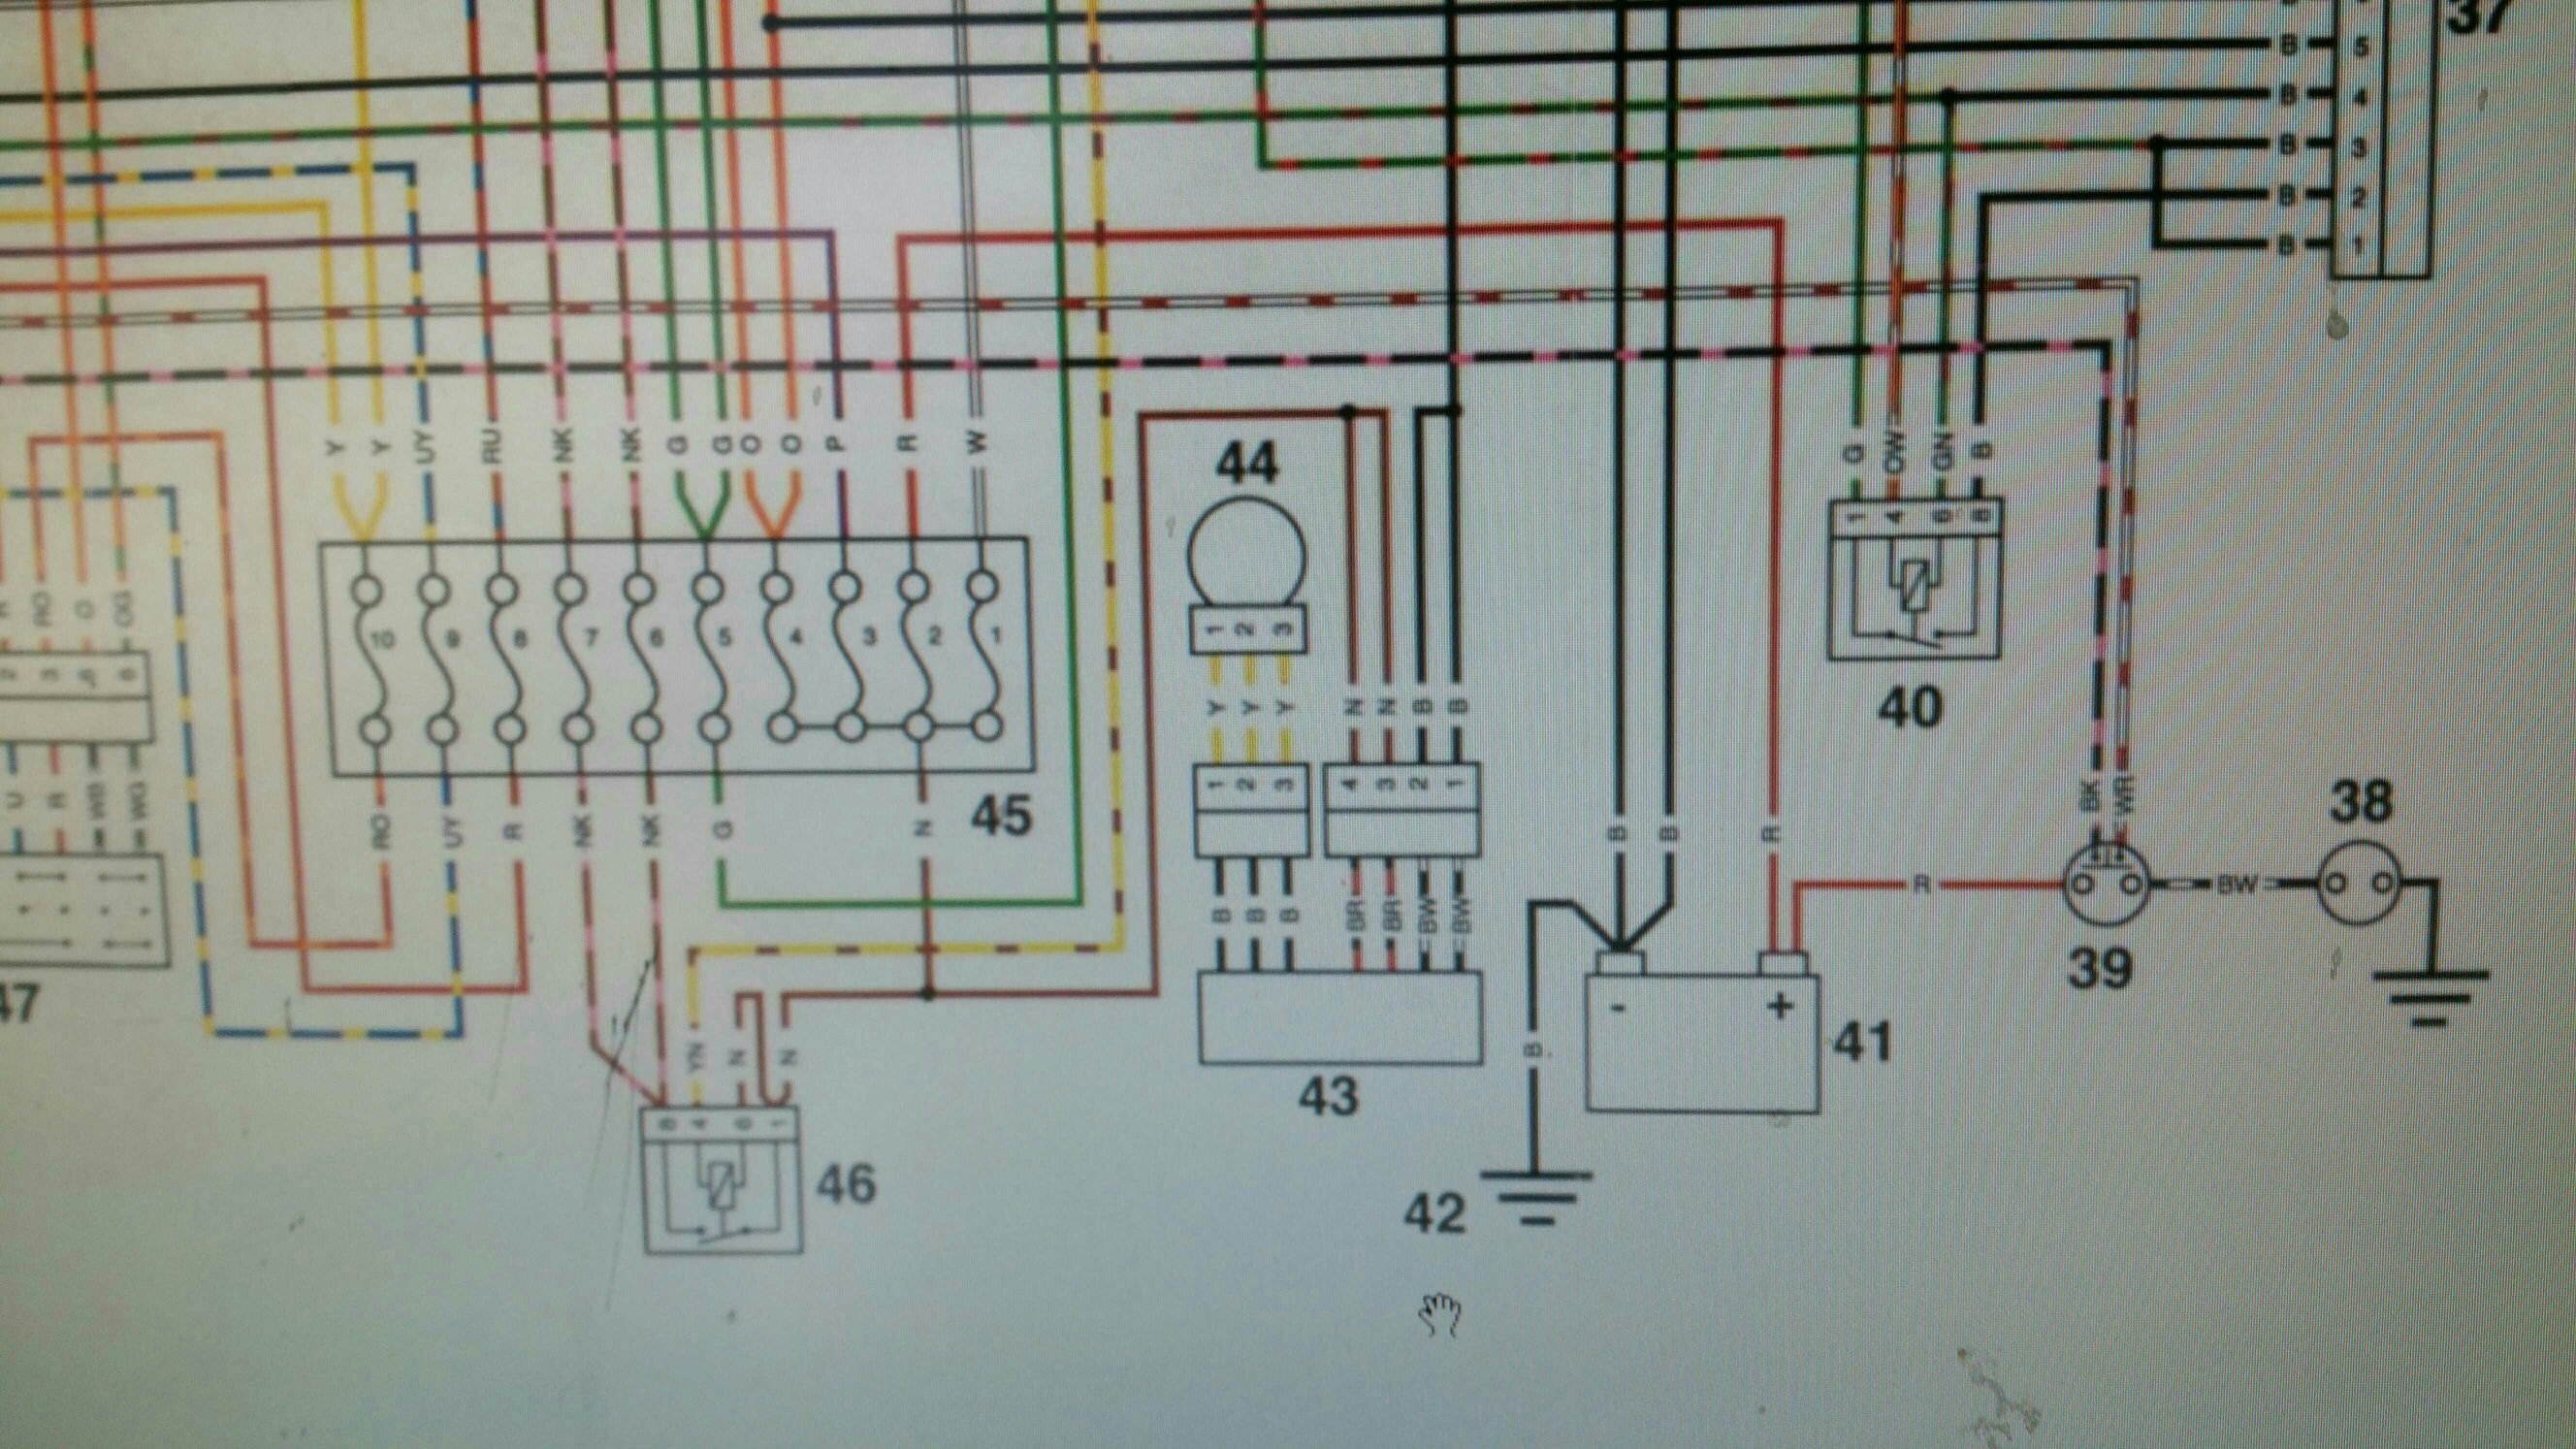 d524200c966ae5e970b5dc1c23fcc303 2001 triumph tt600 wiring diagram triumph forum triumph rat triumph sprint st 1050 wiring diagram at gsmportal.co